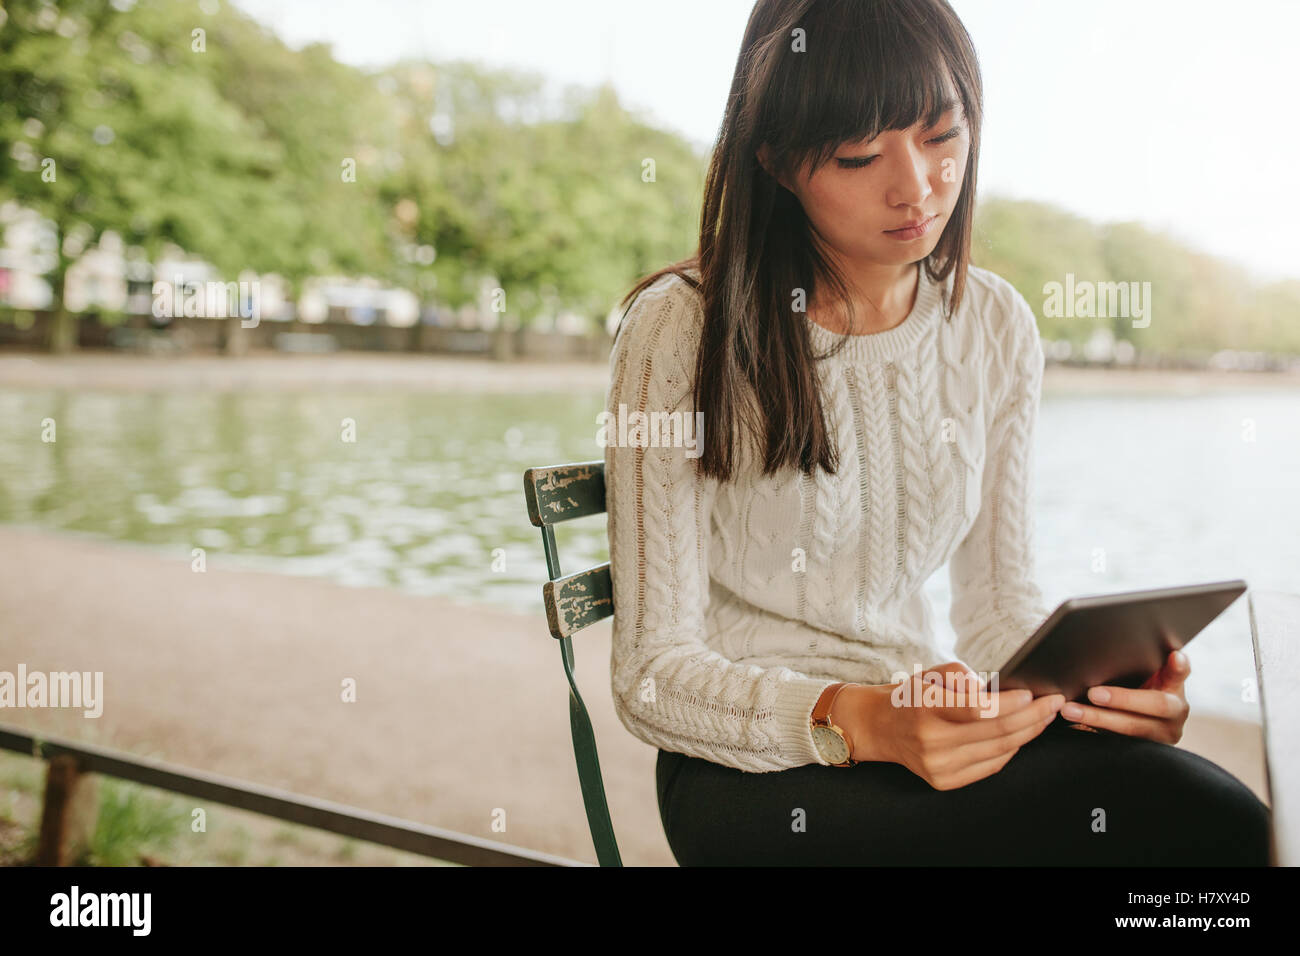 Shot of Chinese woman sitting on chair par l'étang et à l'aide de tablette numérique. Femme Photo Stock